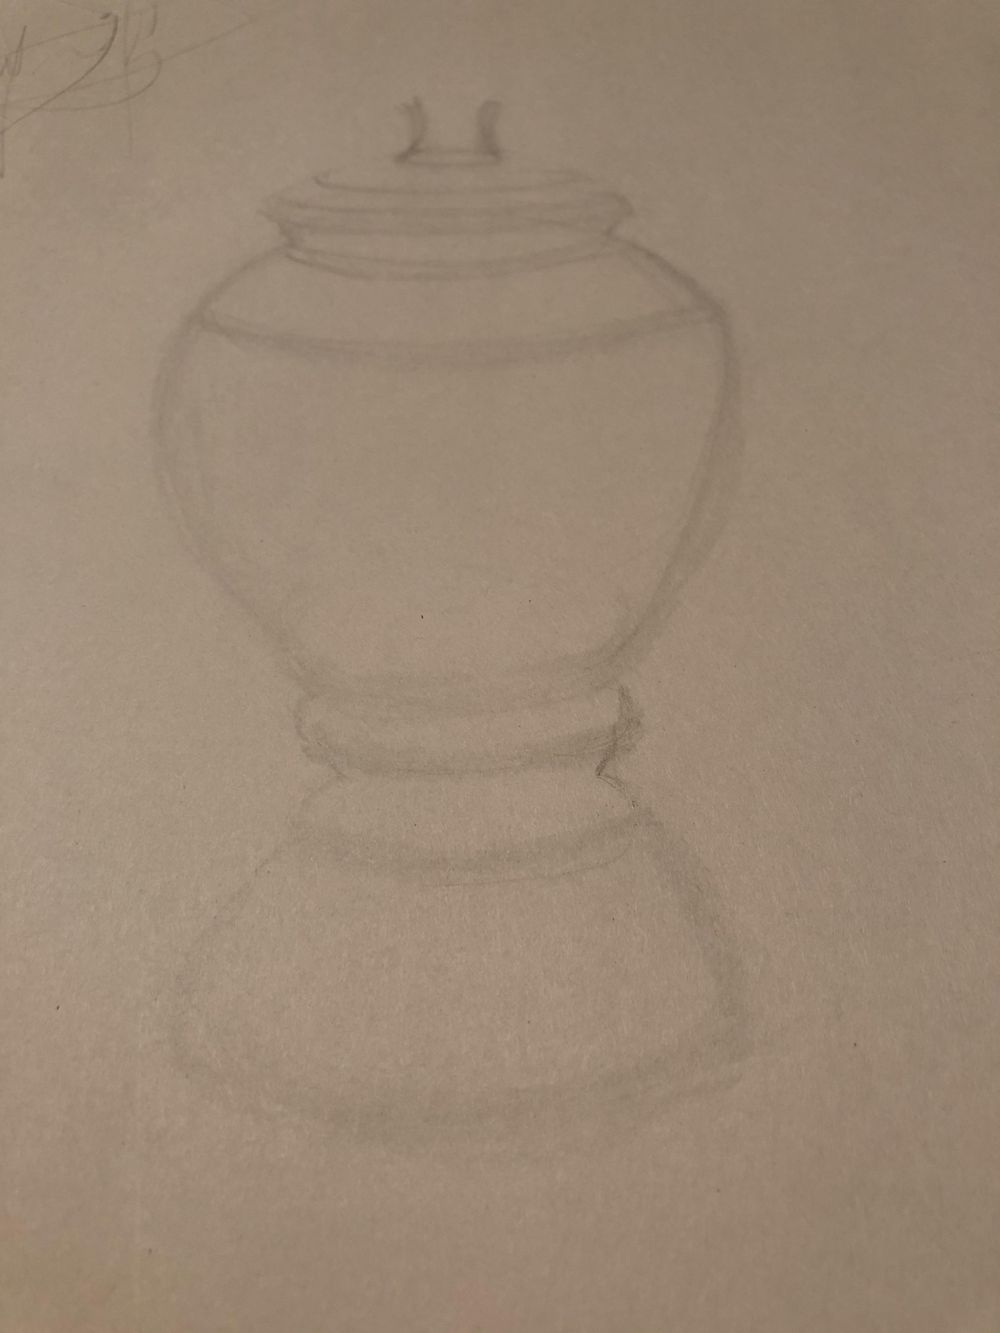 Lamp - image 1 - student project